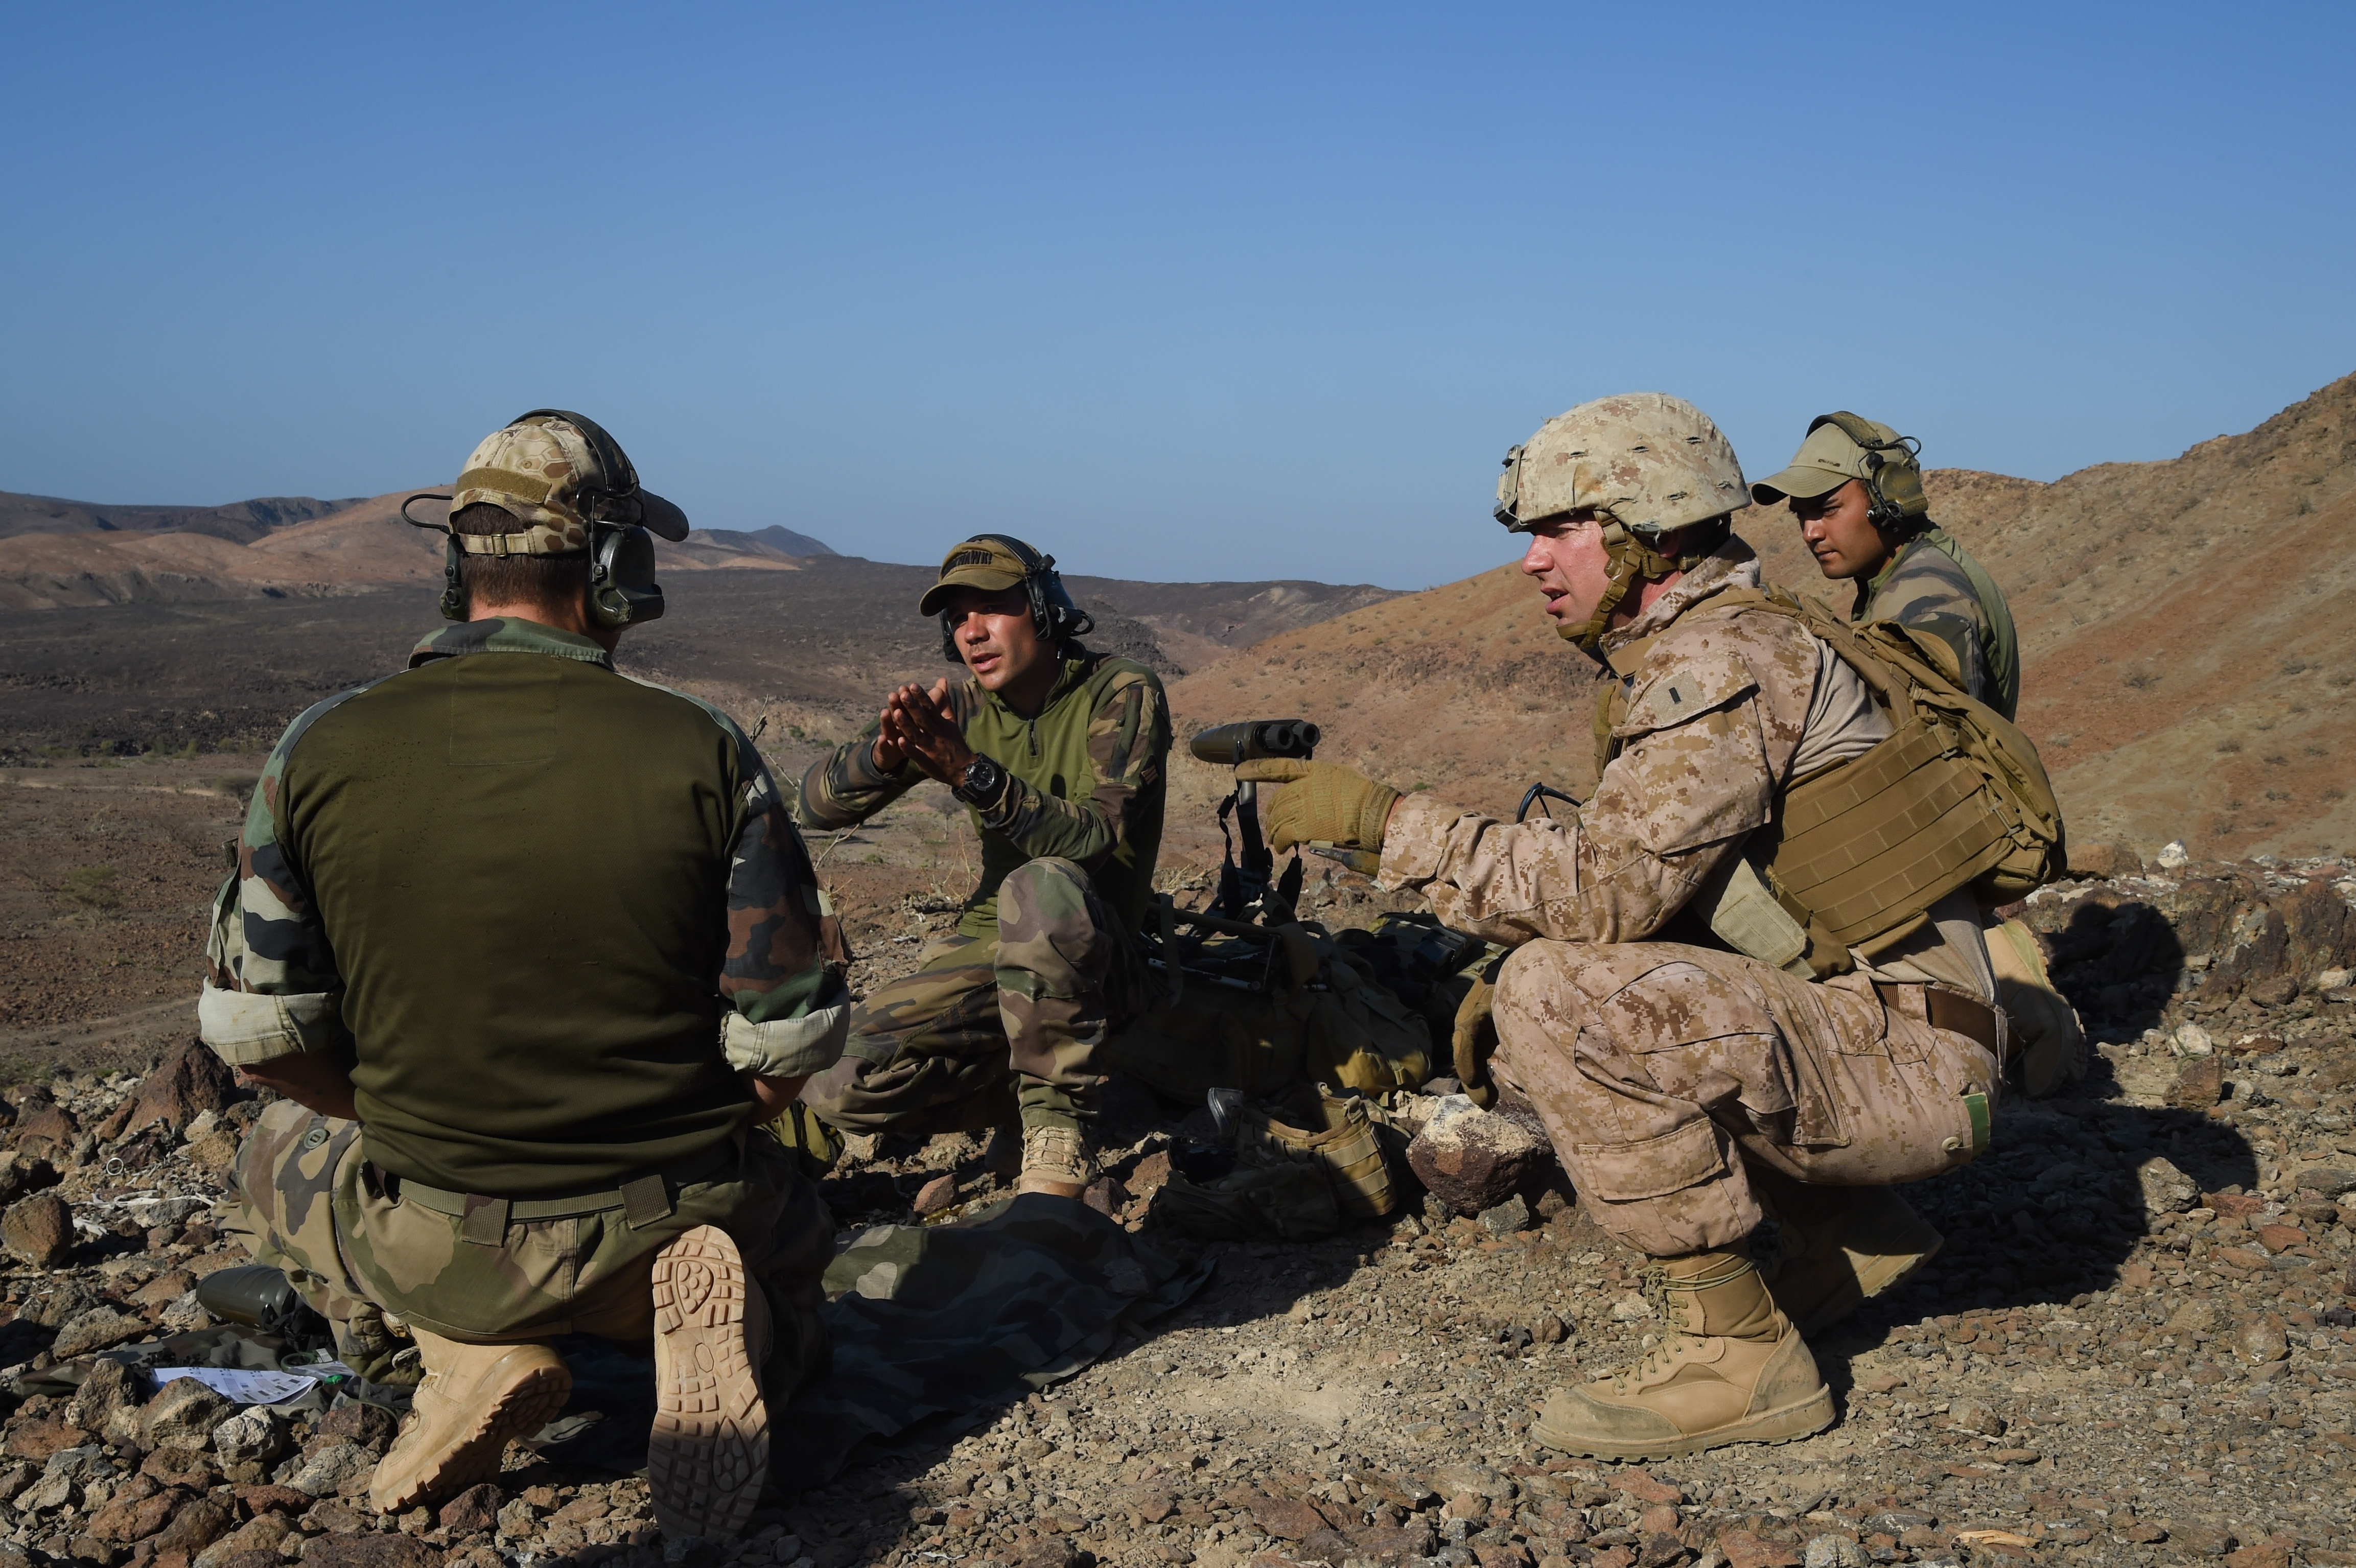 U.S. Marine Corps 2nd Lt. Joshua Gray, Scout Sniper Platoon, Battalion Landing Team 1st Battalion, 4th Marines, 11th Marine Expeditionary Unit, watches the range through a scope at an unknown distance course during exercise Alligator Dagger, Dec. 13, 2016, Arta Plage, Djibouti. The range practice was part of bilateral training with the 3rd Infantry French Marines Sniper Platoon. (U.S. Air National Guard photo by Staff Sgt. Penny Snoozy)